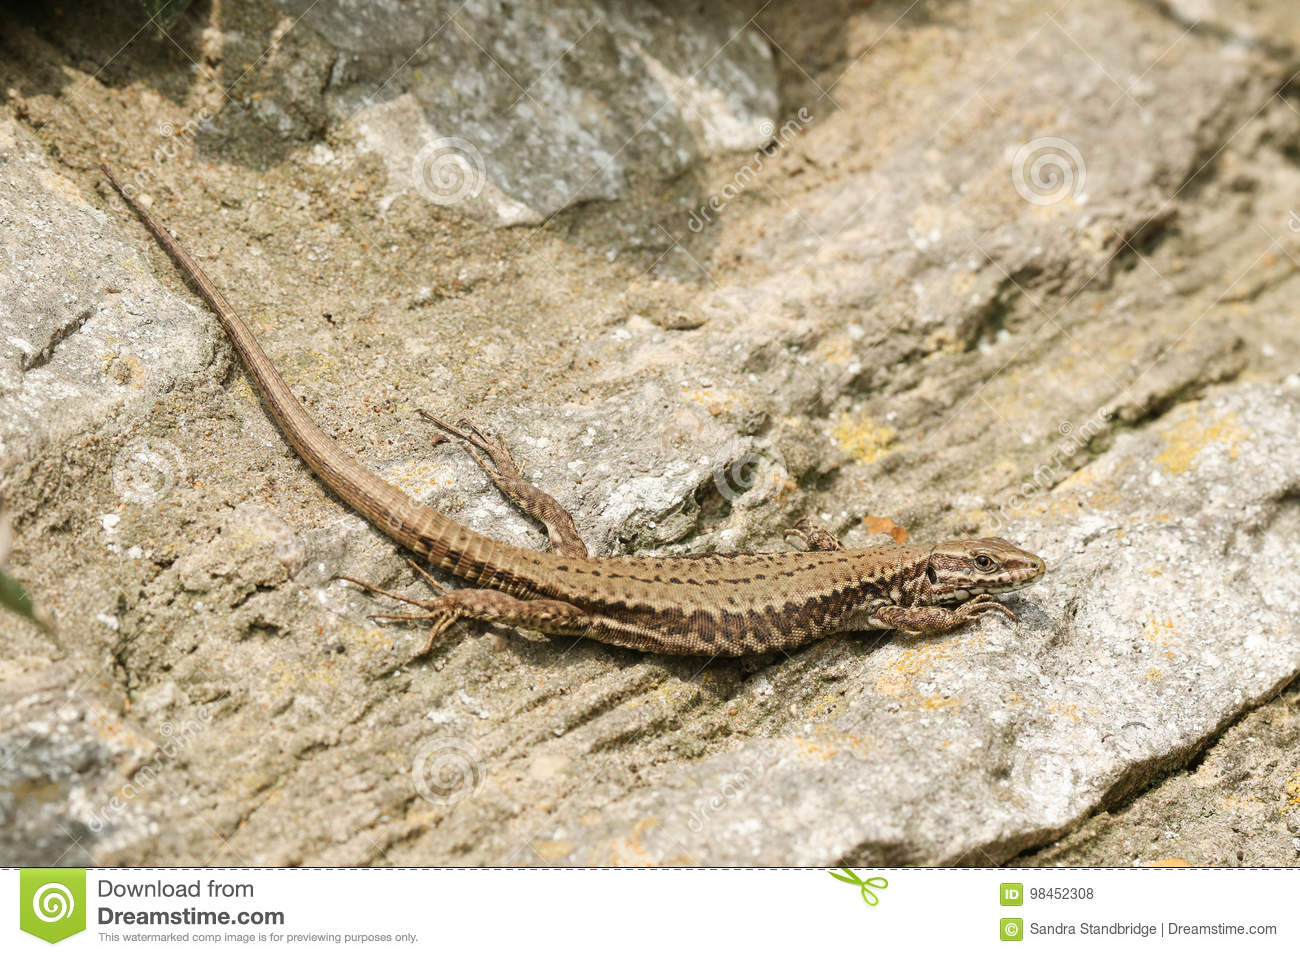 Download A Beautiful Female Wall Lizard Podarcis Muralis Sunning Itself On A Stone Wall. Stock Photo - Image of outdoor, free: 98452308